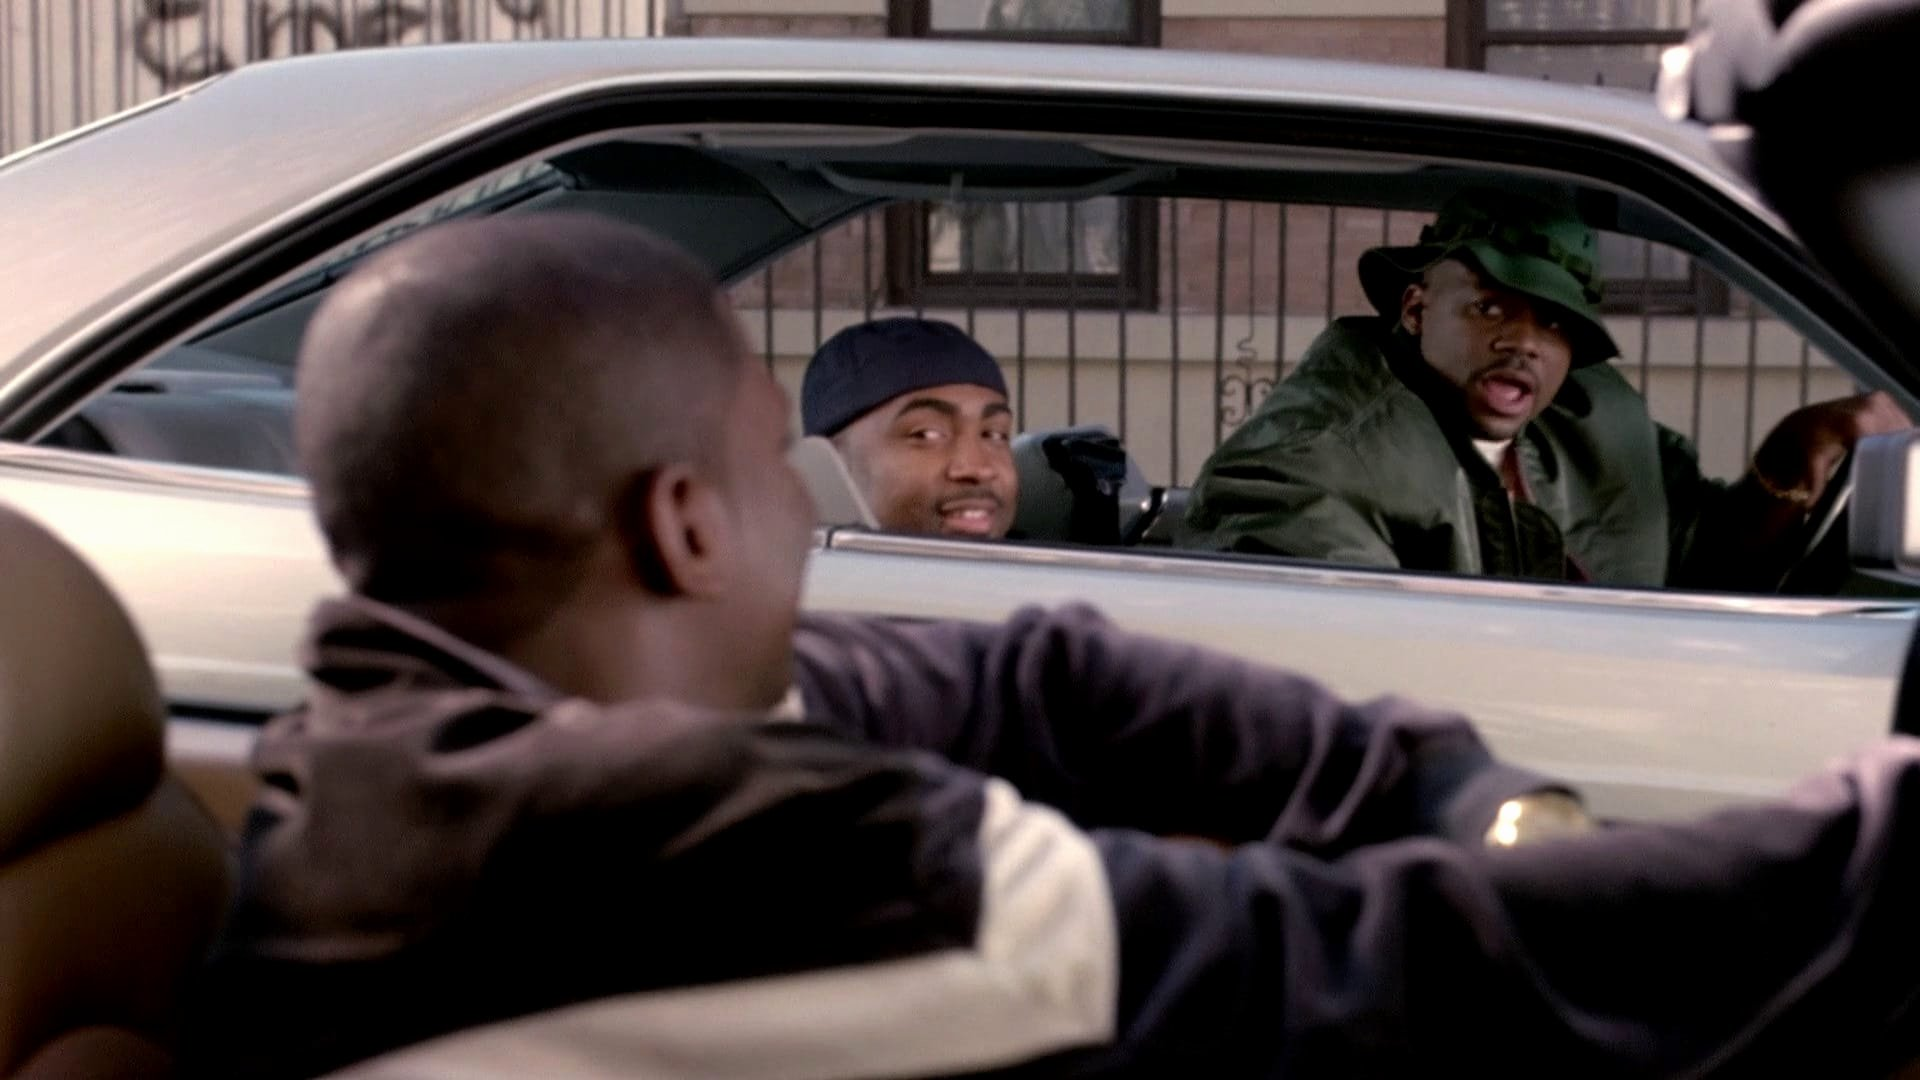 Paid In Full Free Online Best Of Paid In Full 2002 Watch Full Movie Line for Free